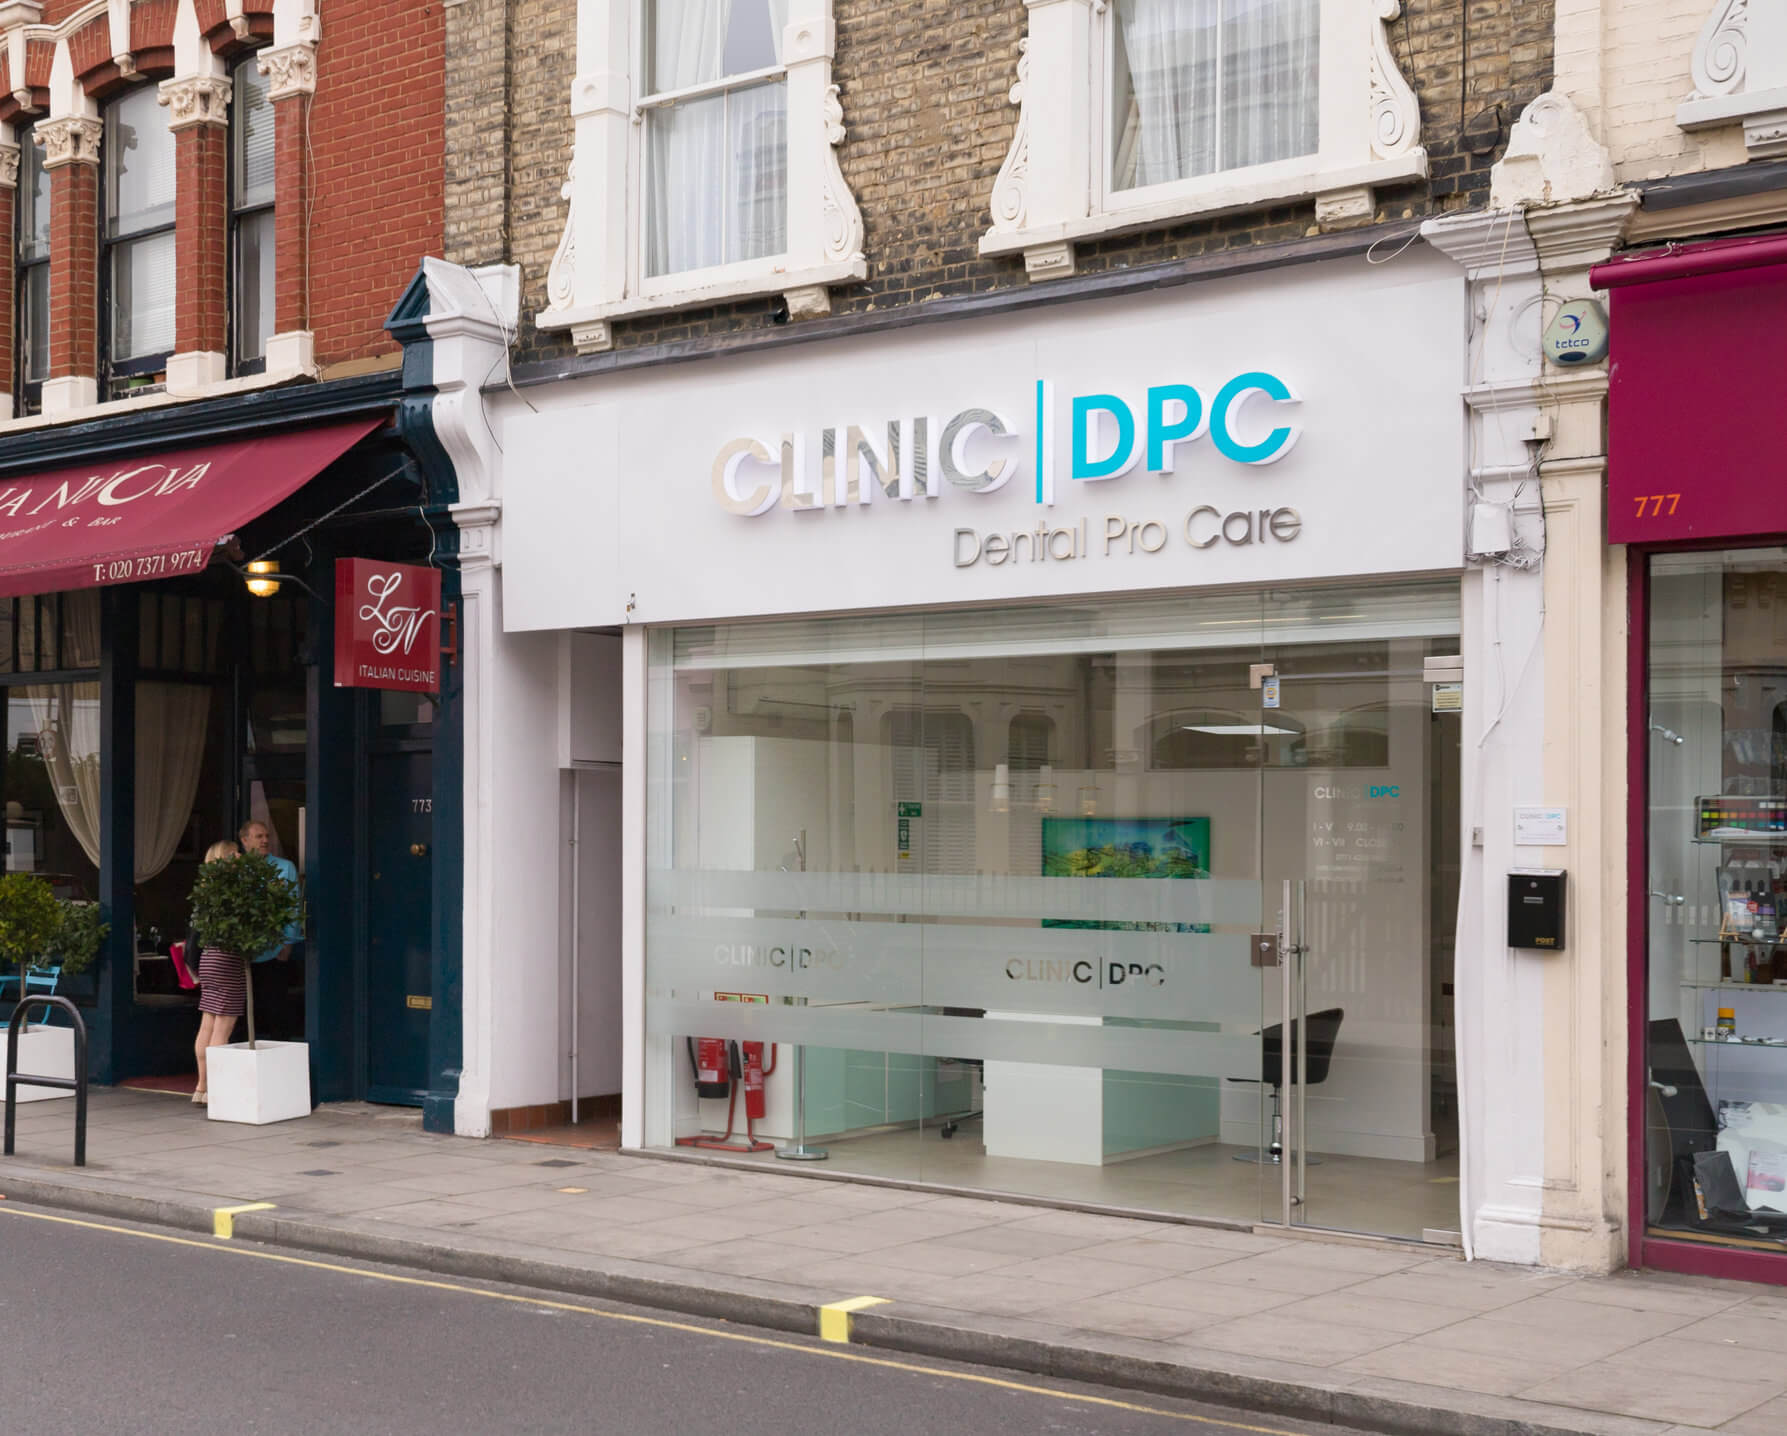 rsz_dpc_clinic_1_of_16